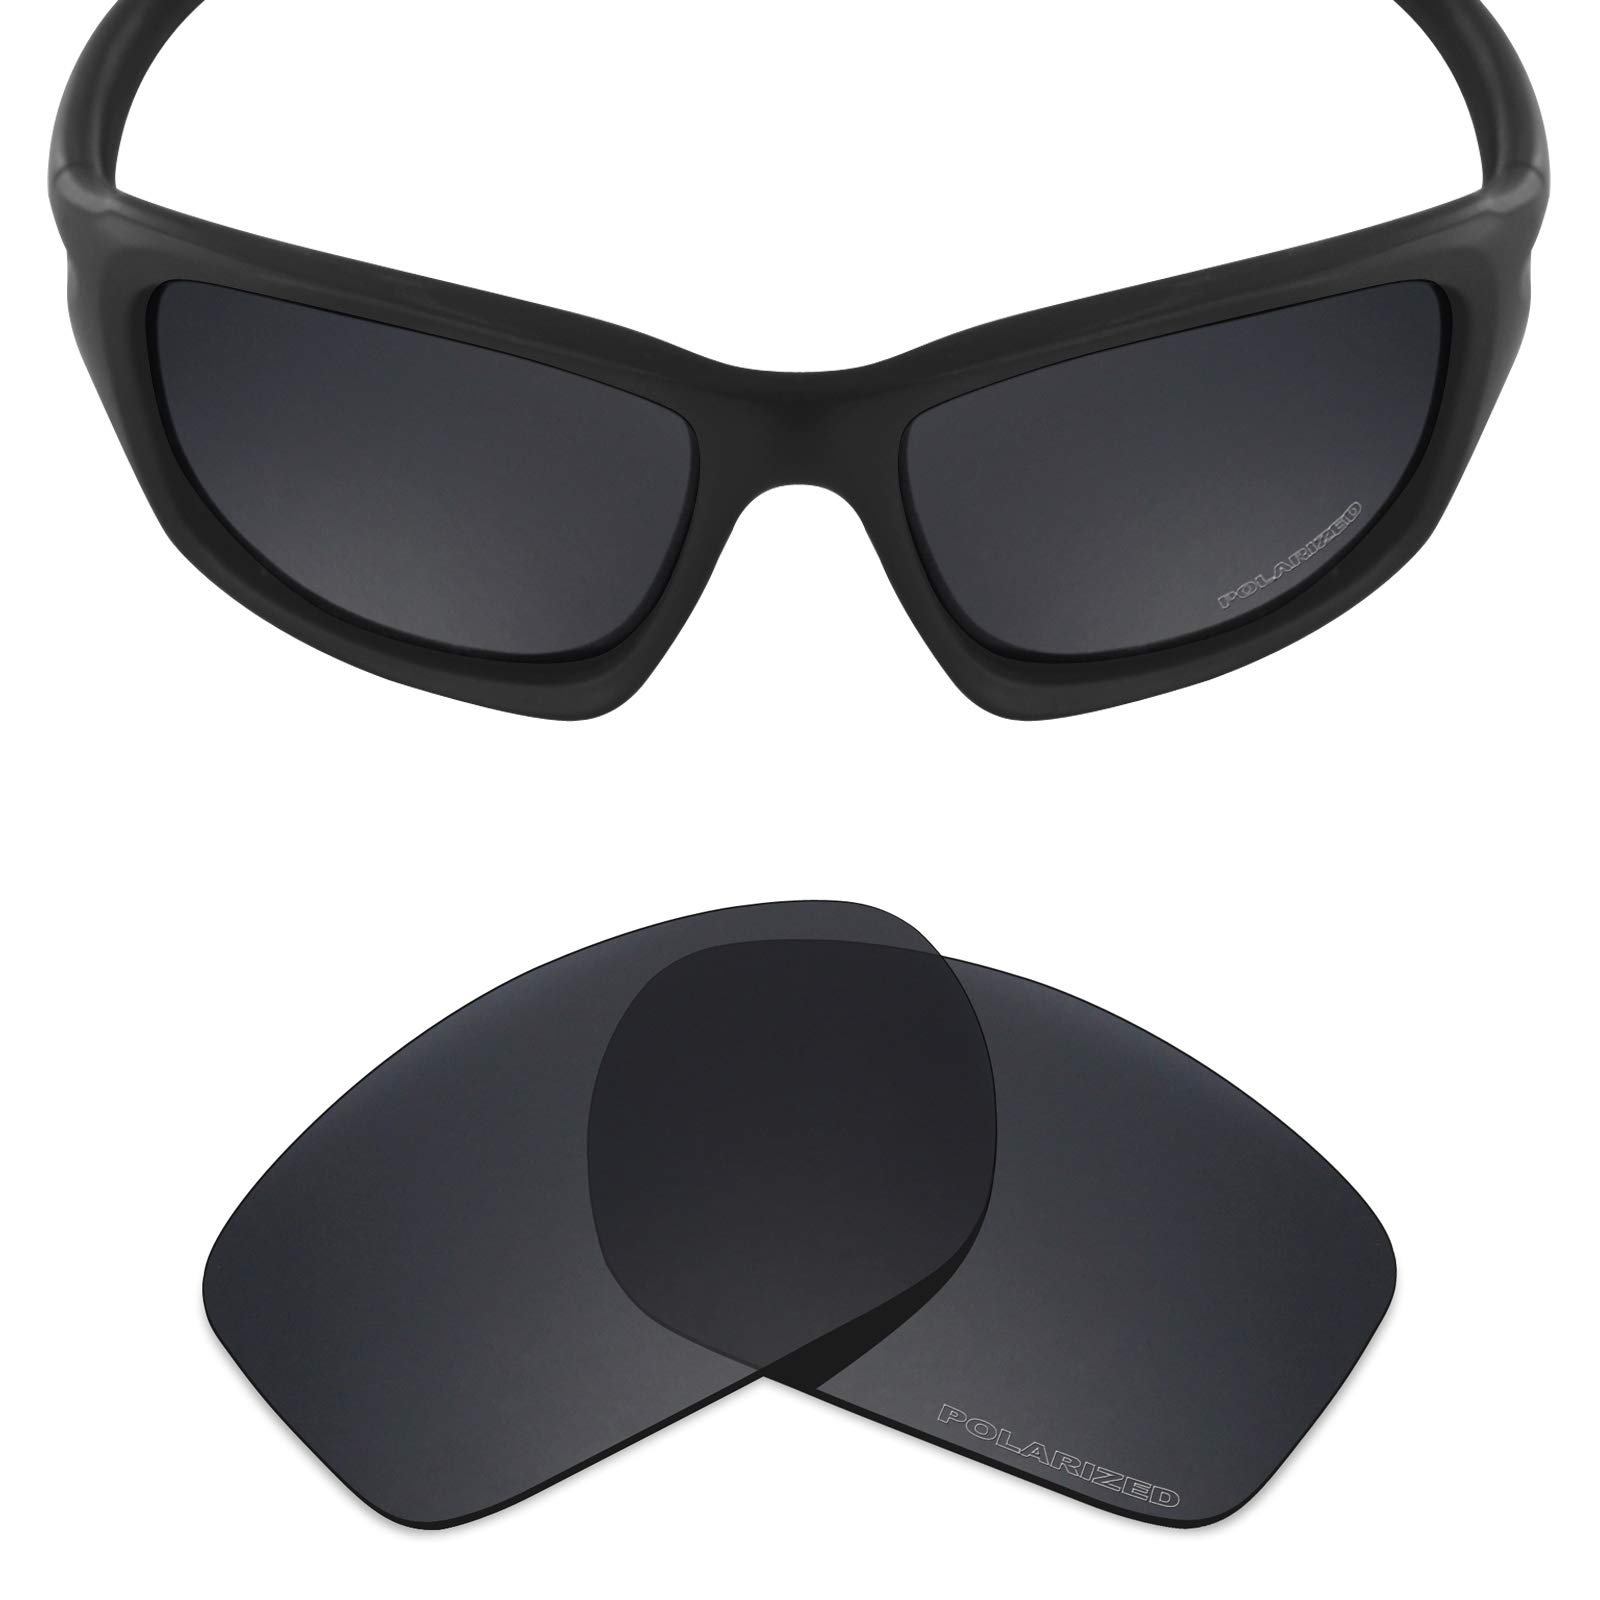 5d84bc6ae940f Mryok+ Polarized Replacement Lenses for Oakley Valve New 2014 - Stealth  Black